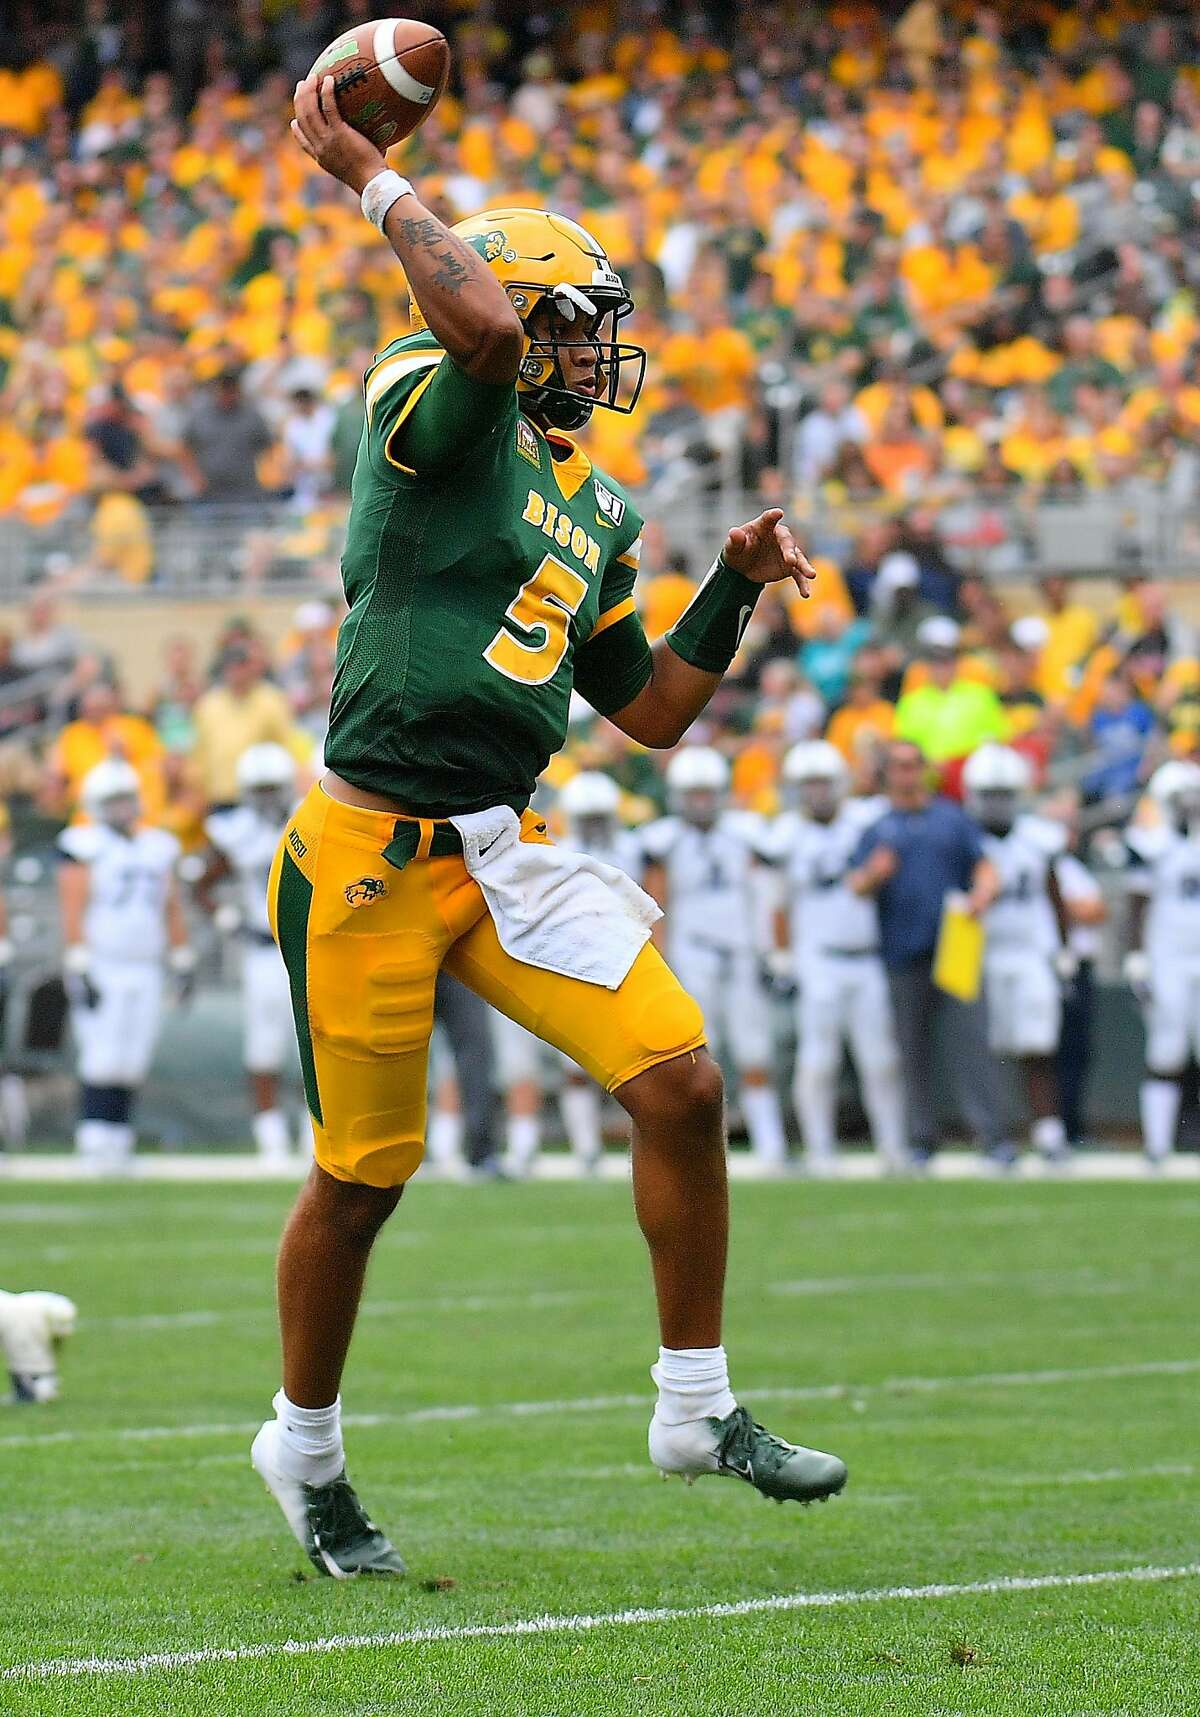 MINNEAPOLIS, MINNESOTA - AUGUST 31: Quarterback Trey Lance #5 of the North Dakota State Bison passes against the Butler Bulldogs during their game at Target Field on August 31, 2019 in Minneapolis, Minnesota. (Photo by Sam Wasson/Getty Images)